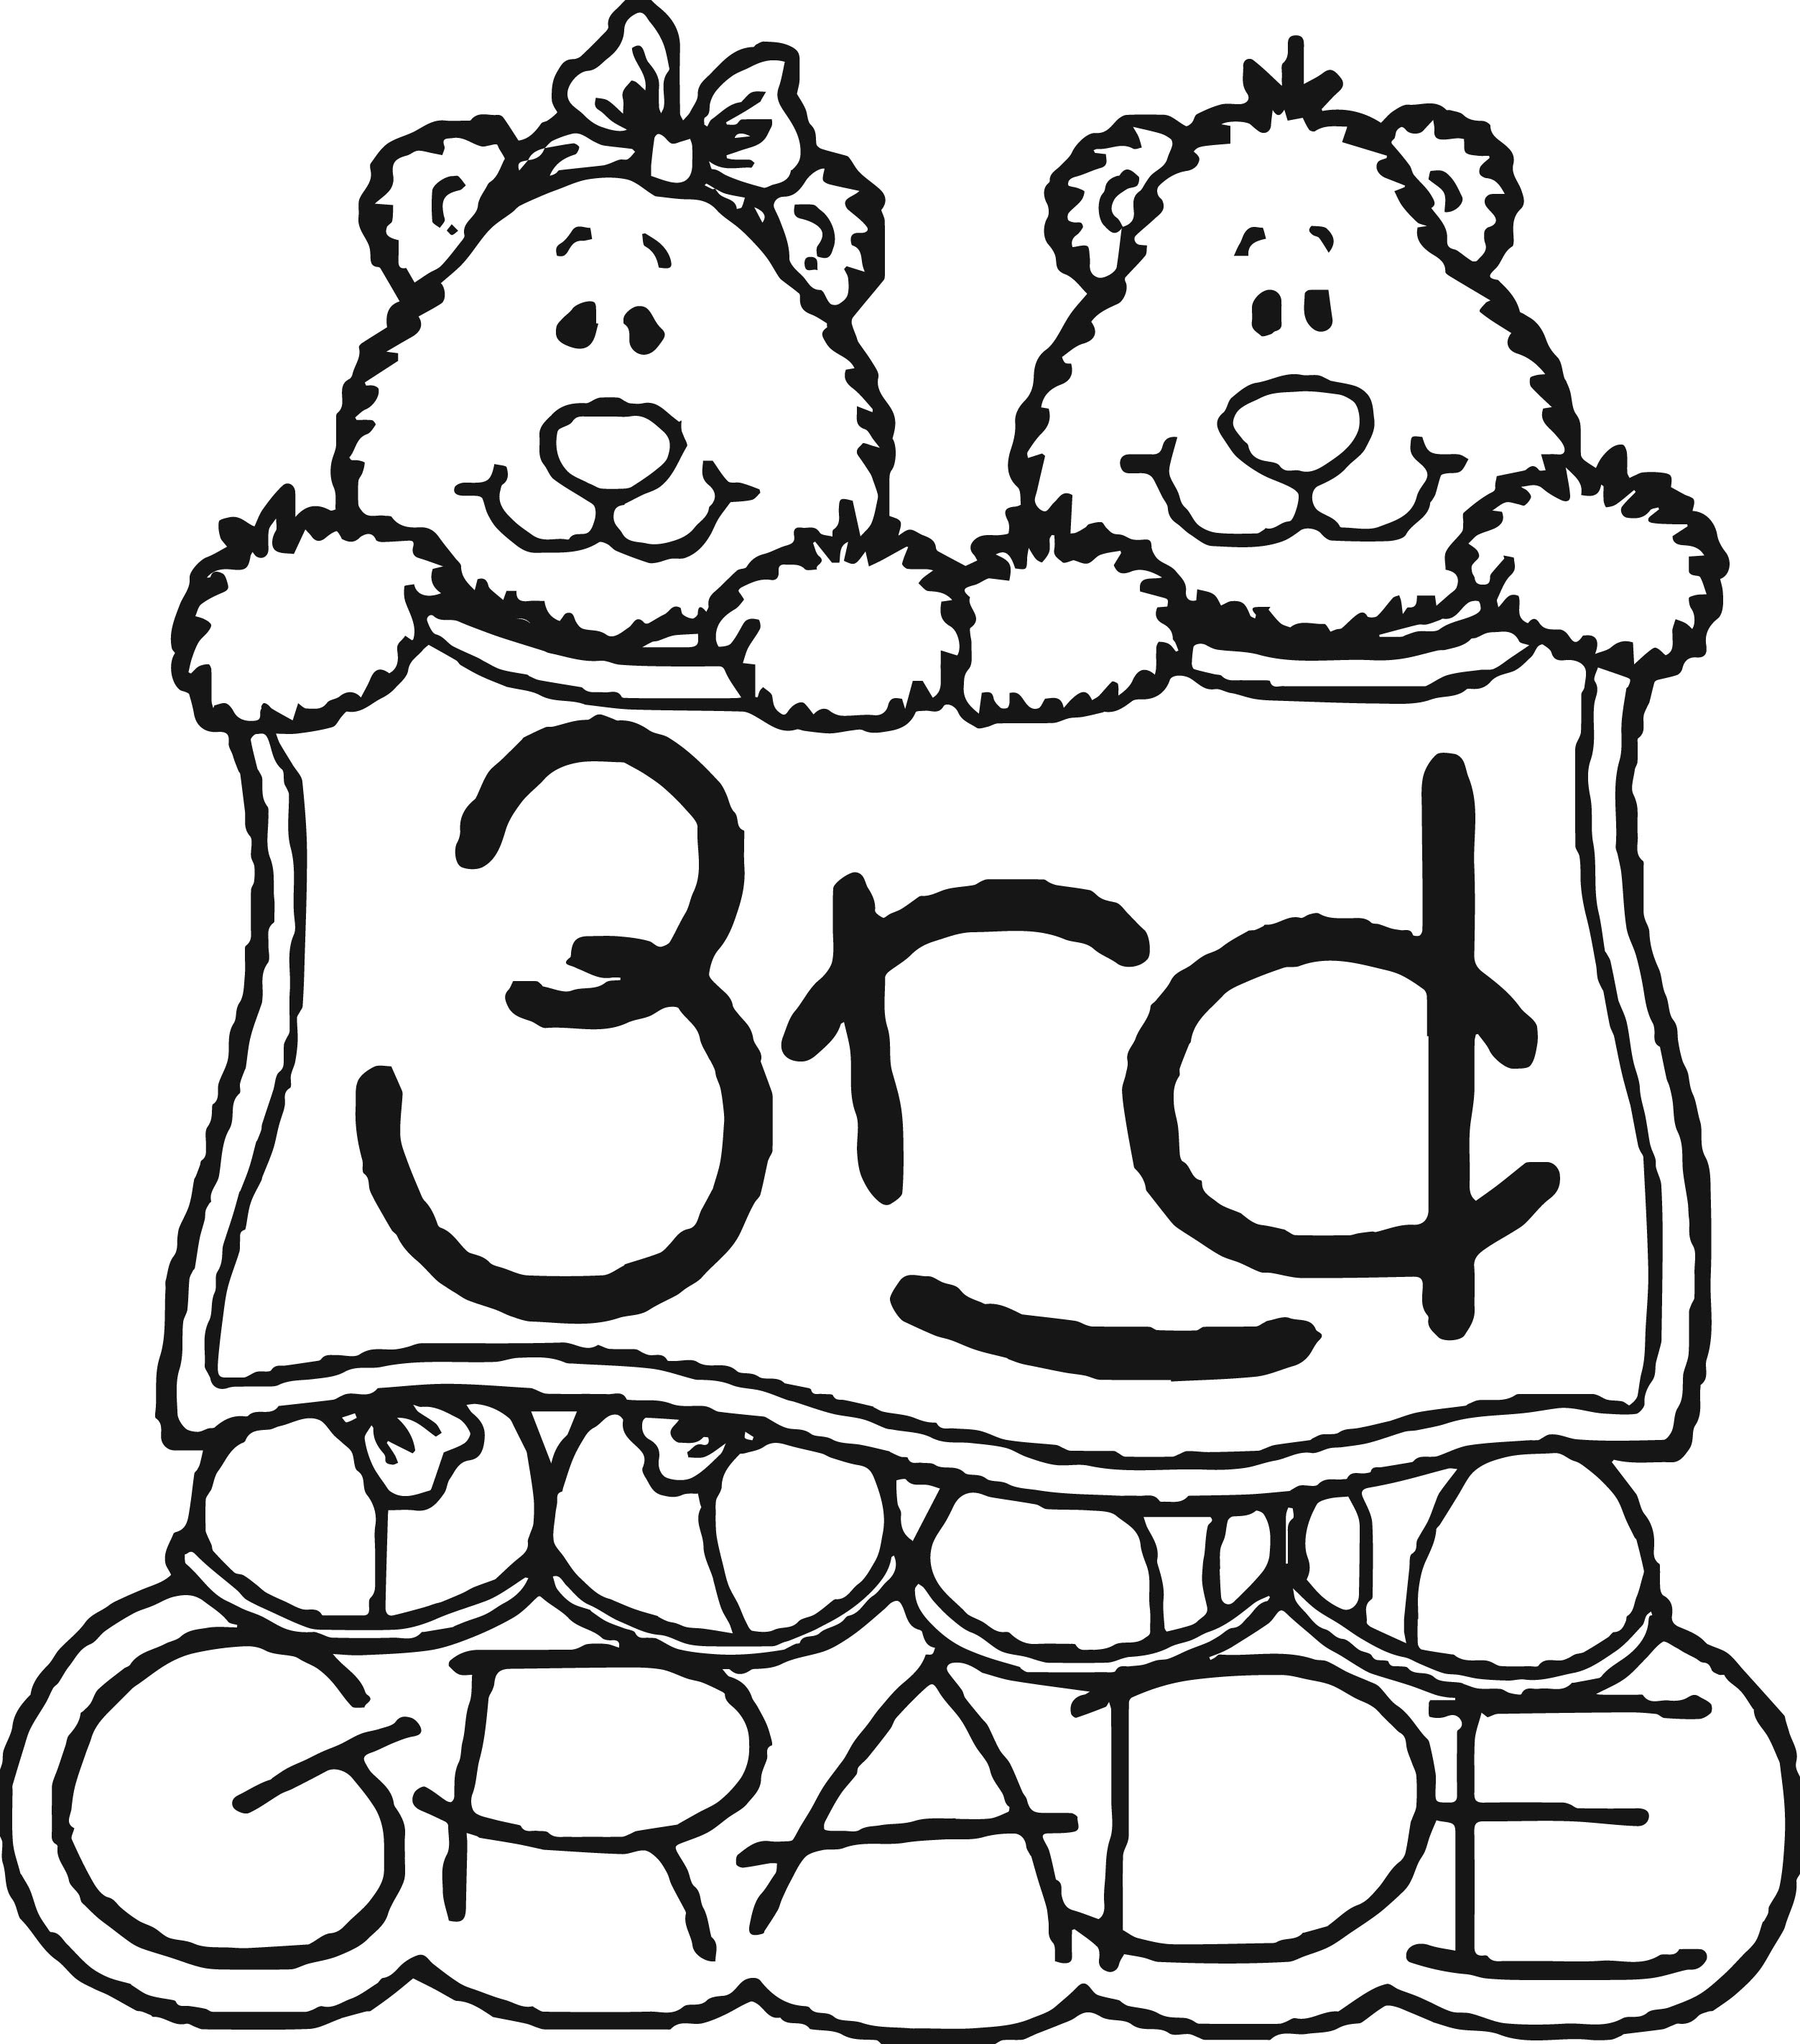 Welcome To 3rd Grade Coloring Sheets Coloring Pages